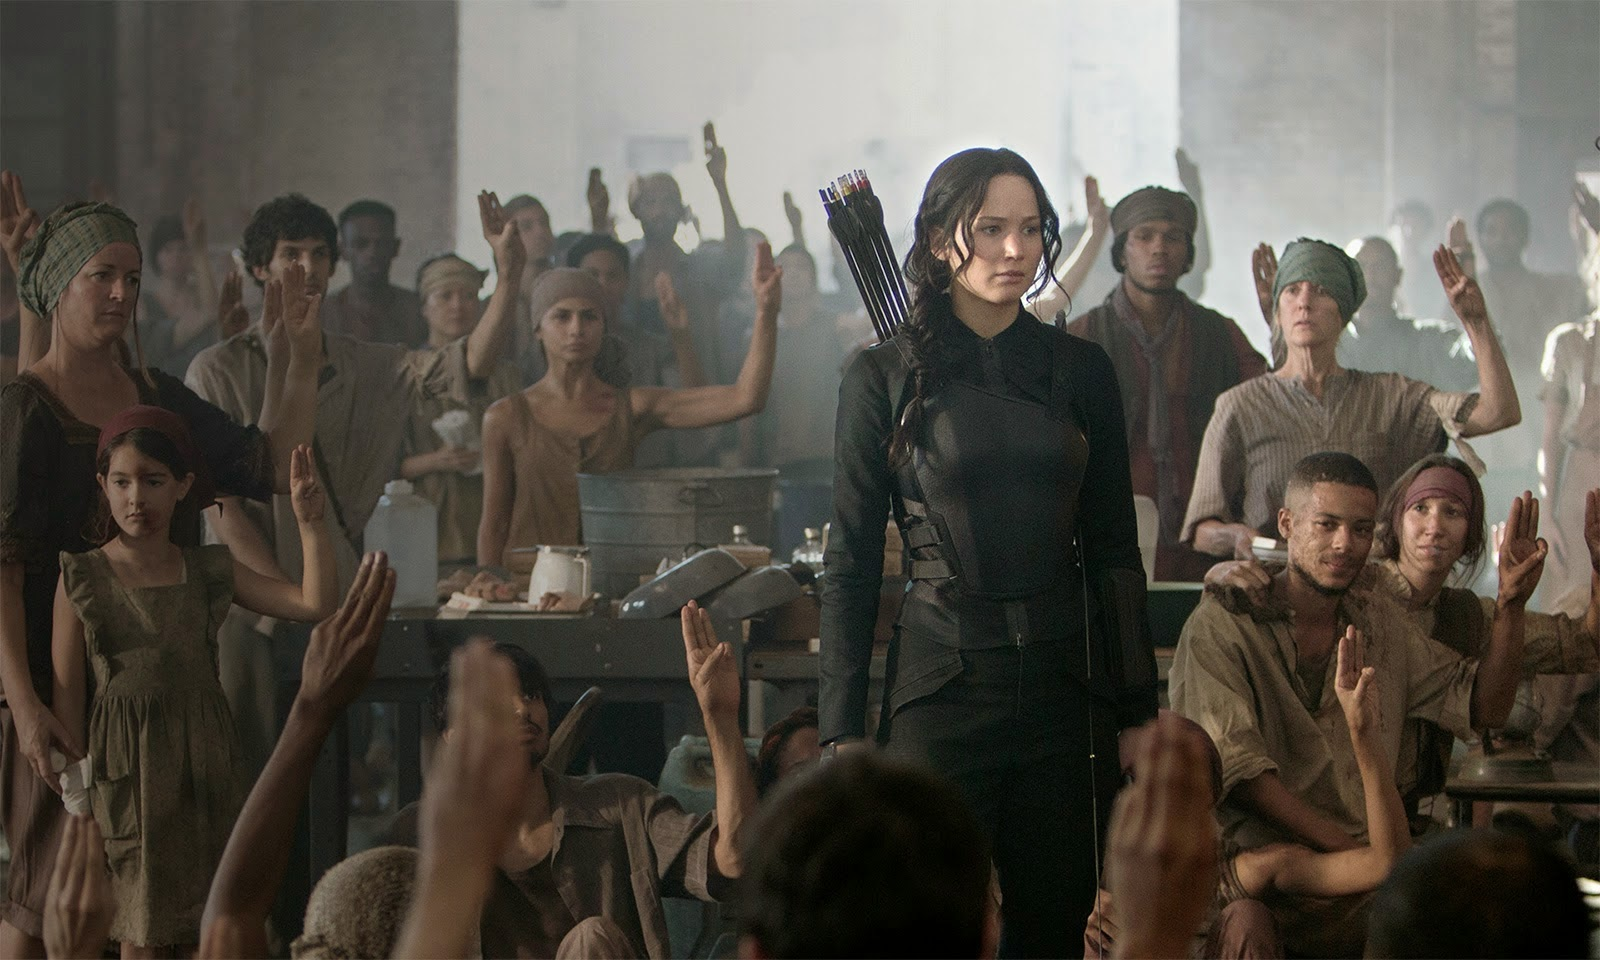 NEWS: 'The Hunger Games: Mockingjay Part 1' tracking to Open to $150 Million in North America